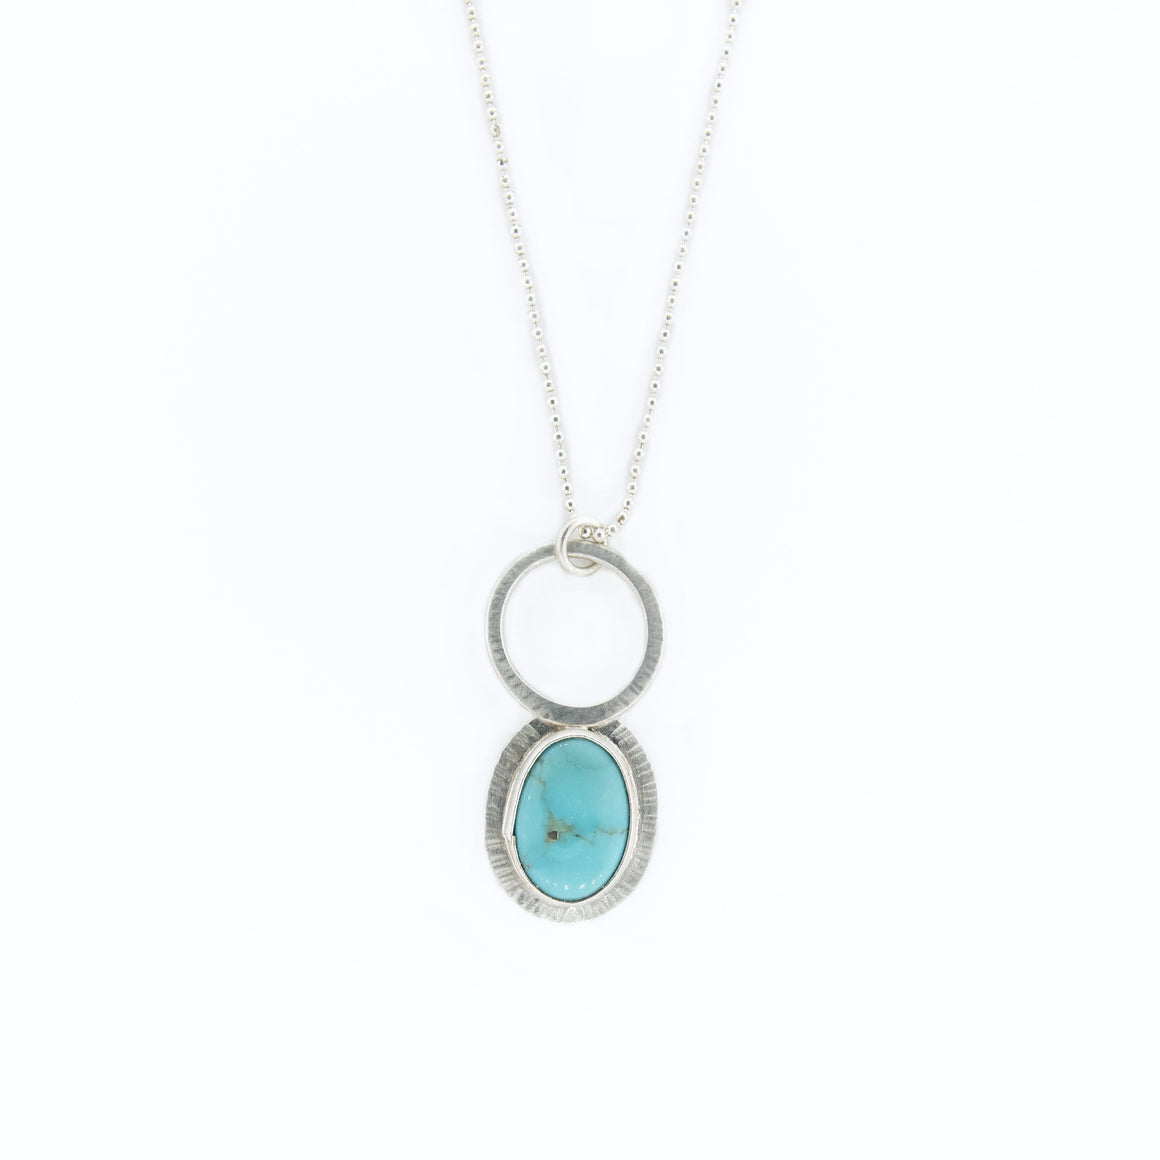 Belle - Focus Turquoise Necklace